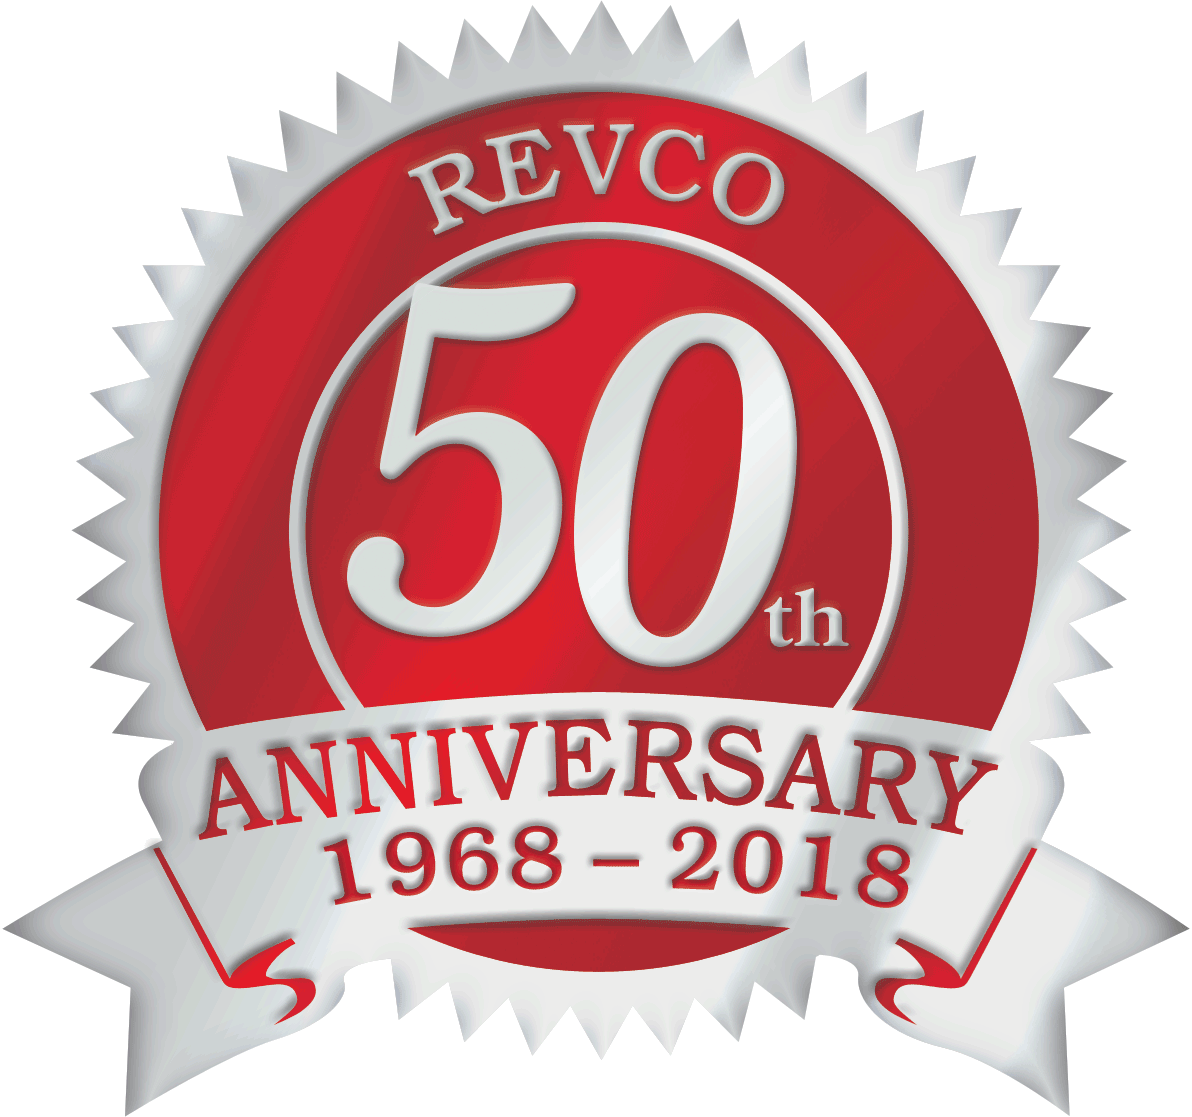 Celebrating 50 years of outstanding customer satisfaction….